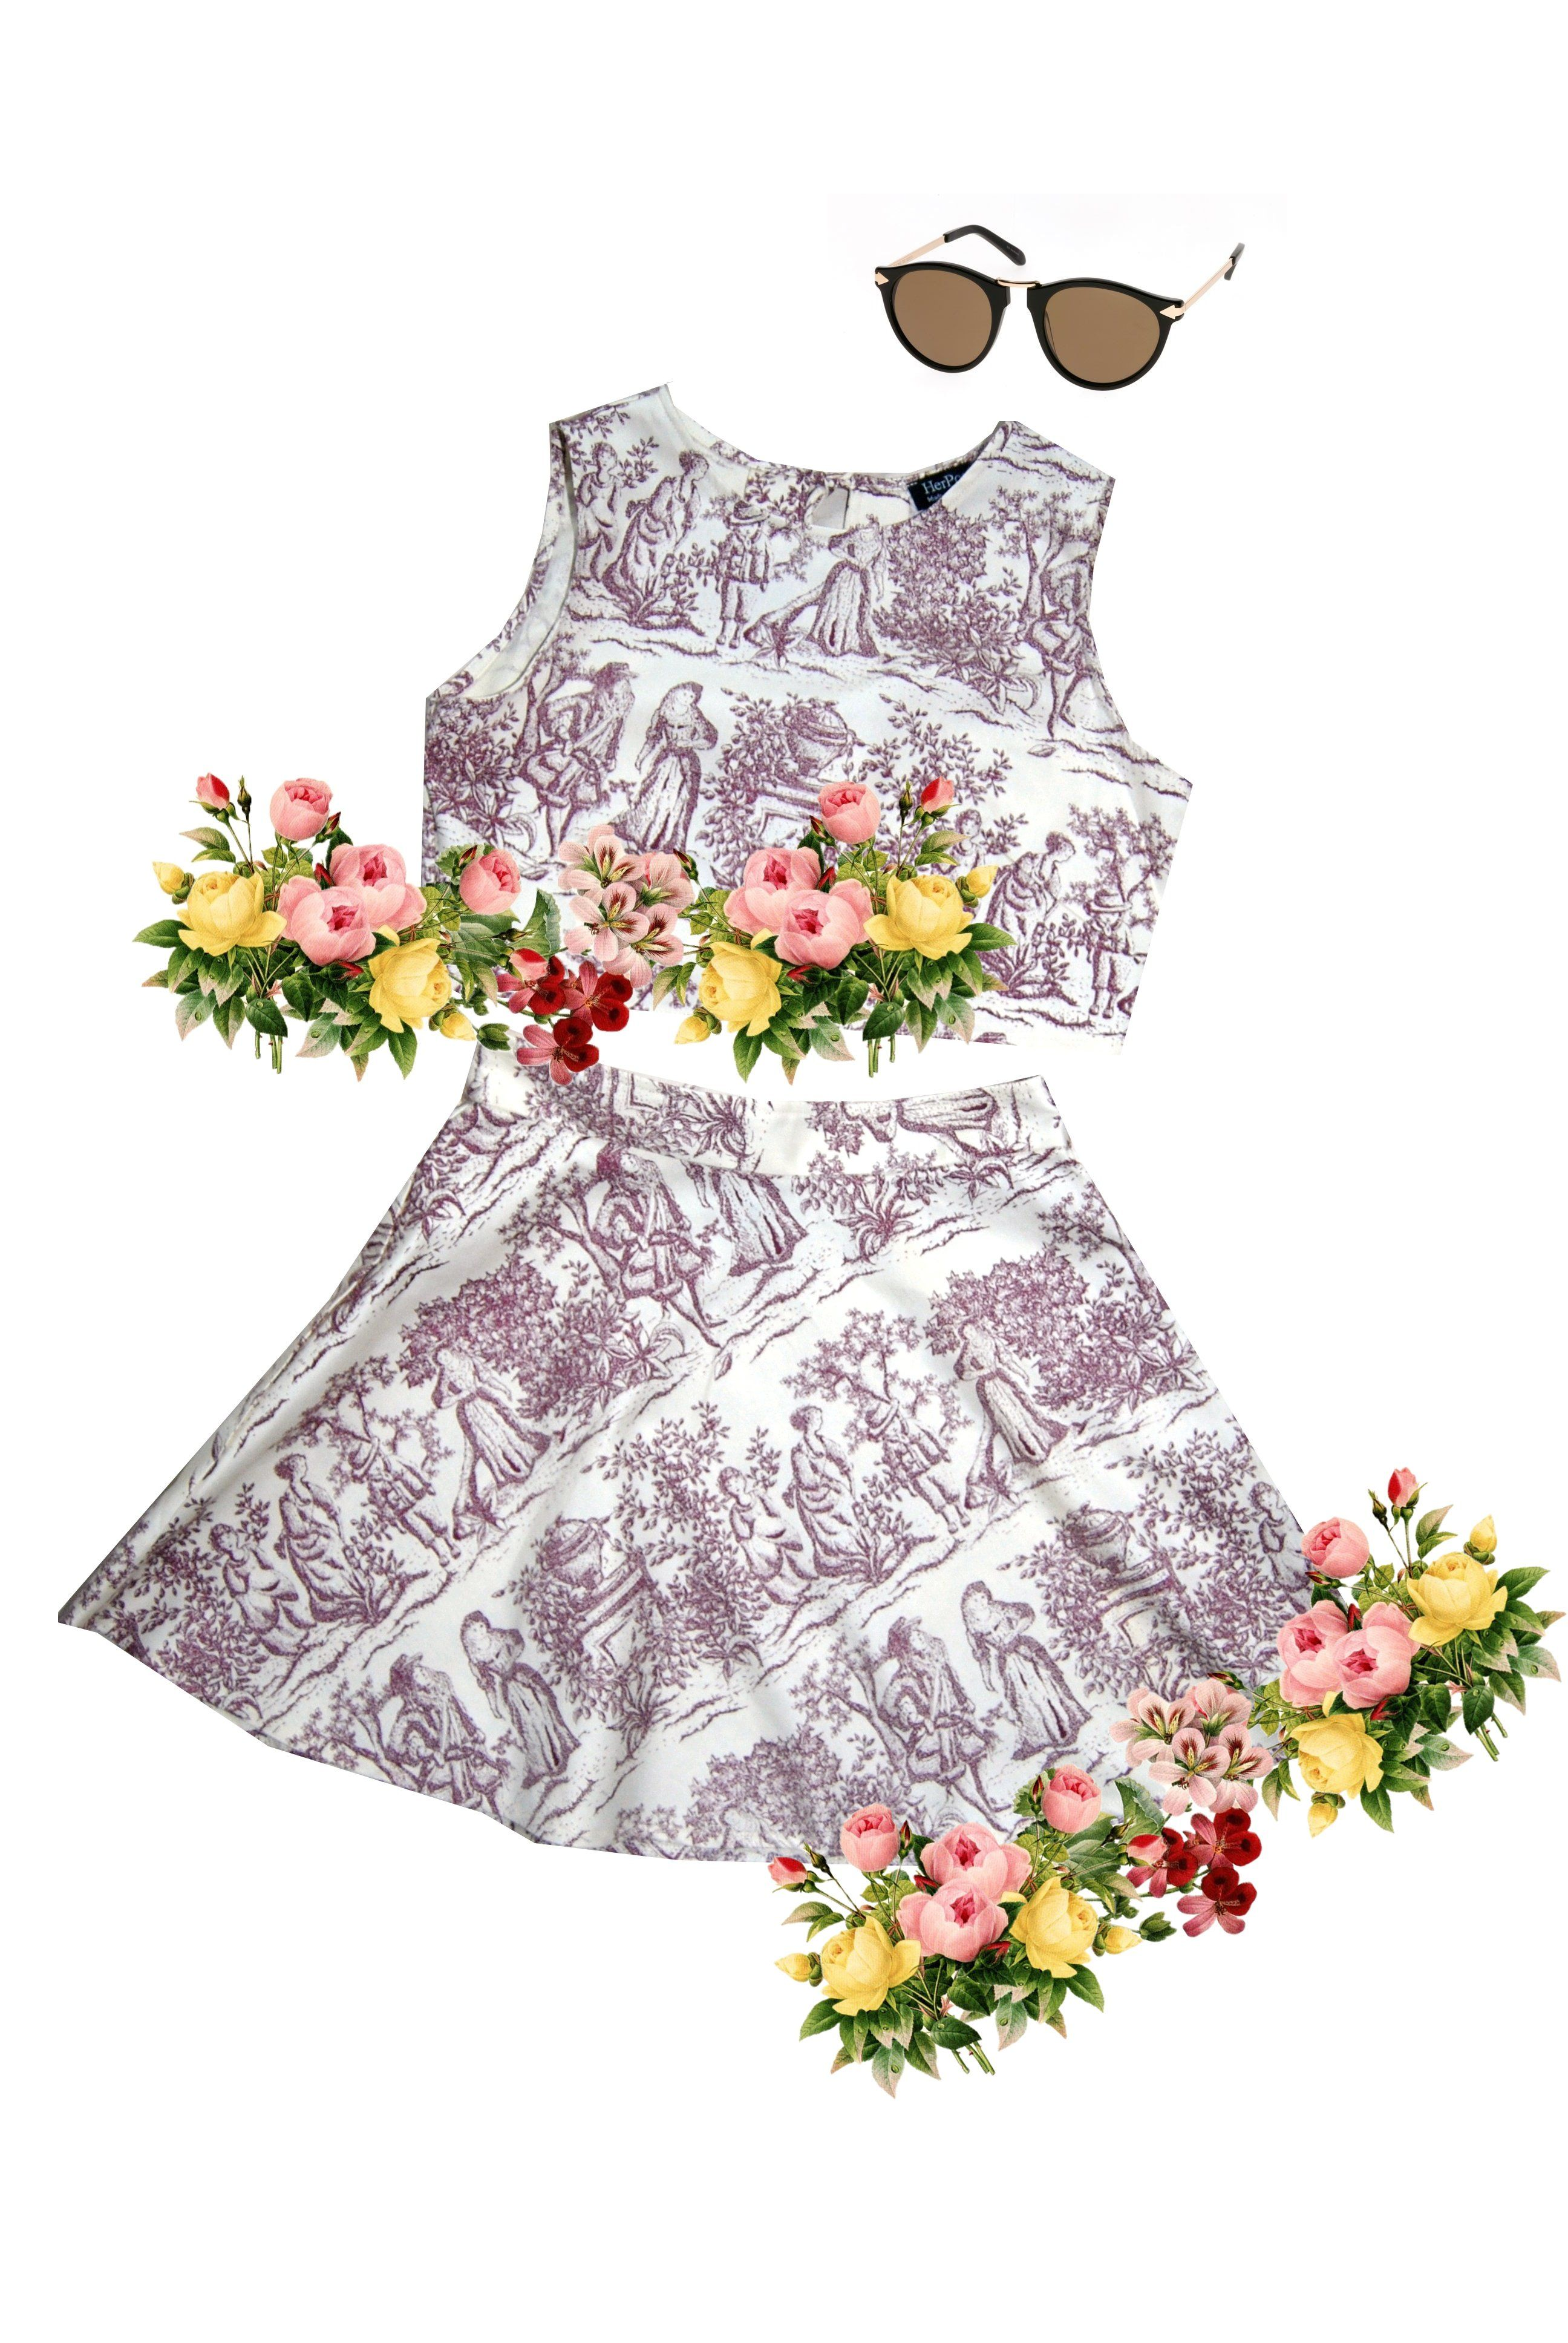 Festival Season Begins! We have only TWO of this little set available both size 8. RRP $159 <3 www.herpony.com